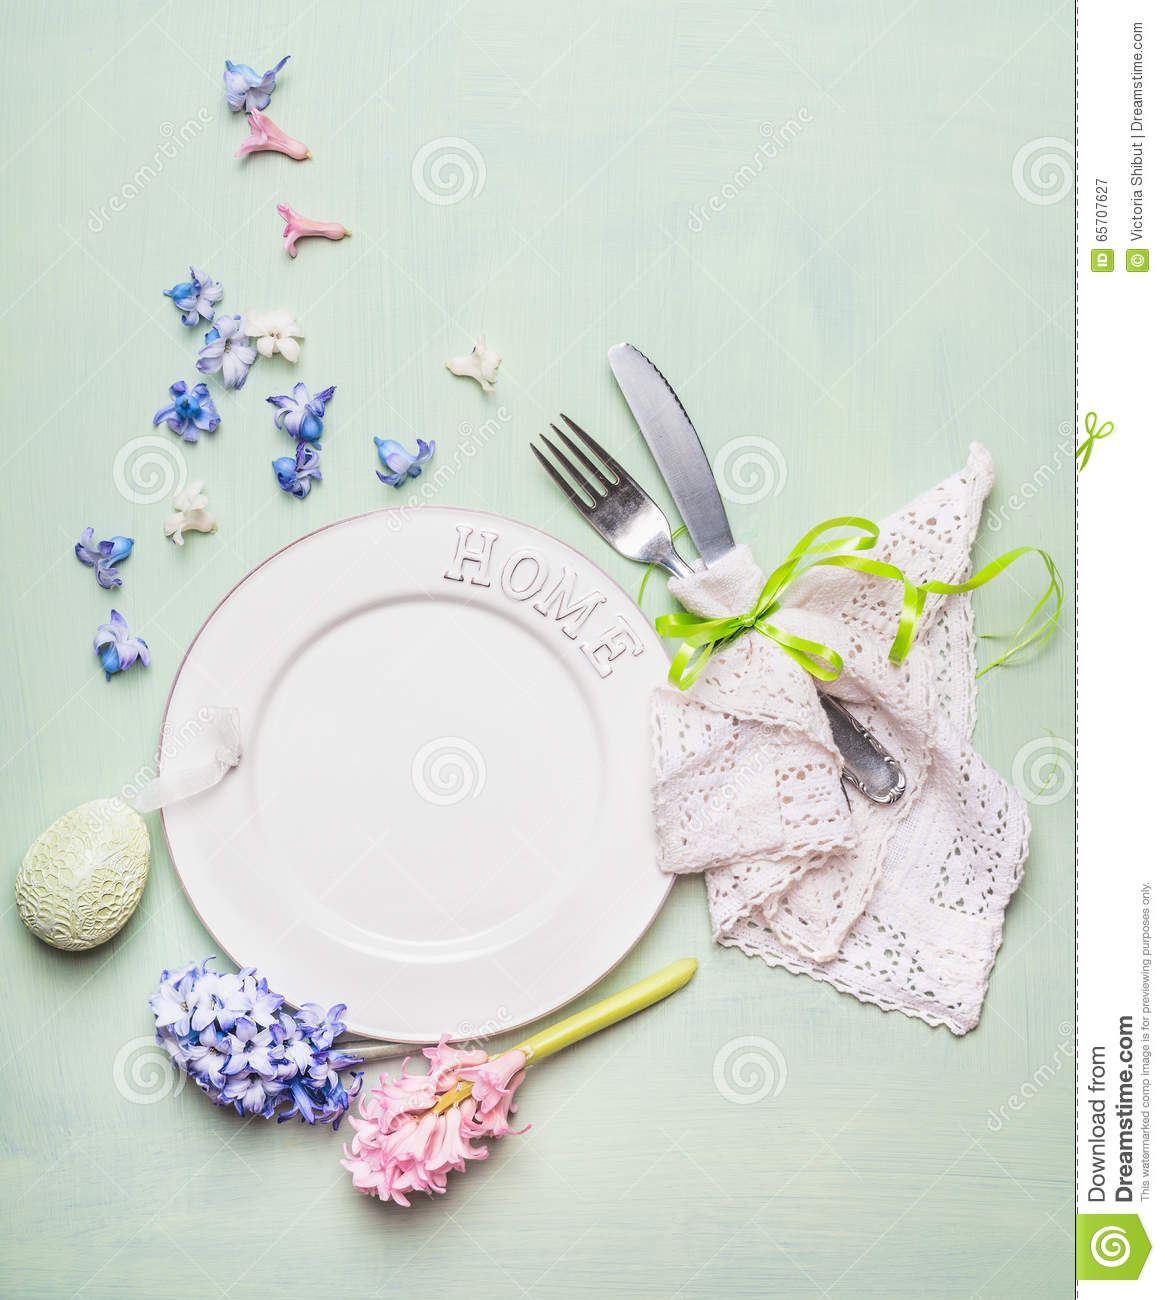 Easter table place setting with blank plate, hyacinths flowers decoration, cutlery and decor egg on light green background, top v